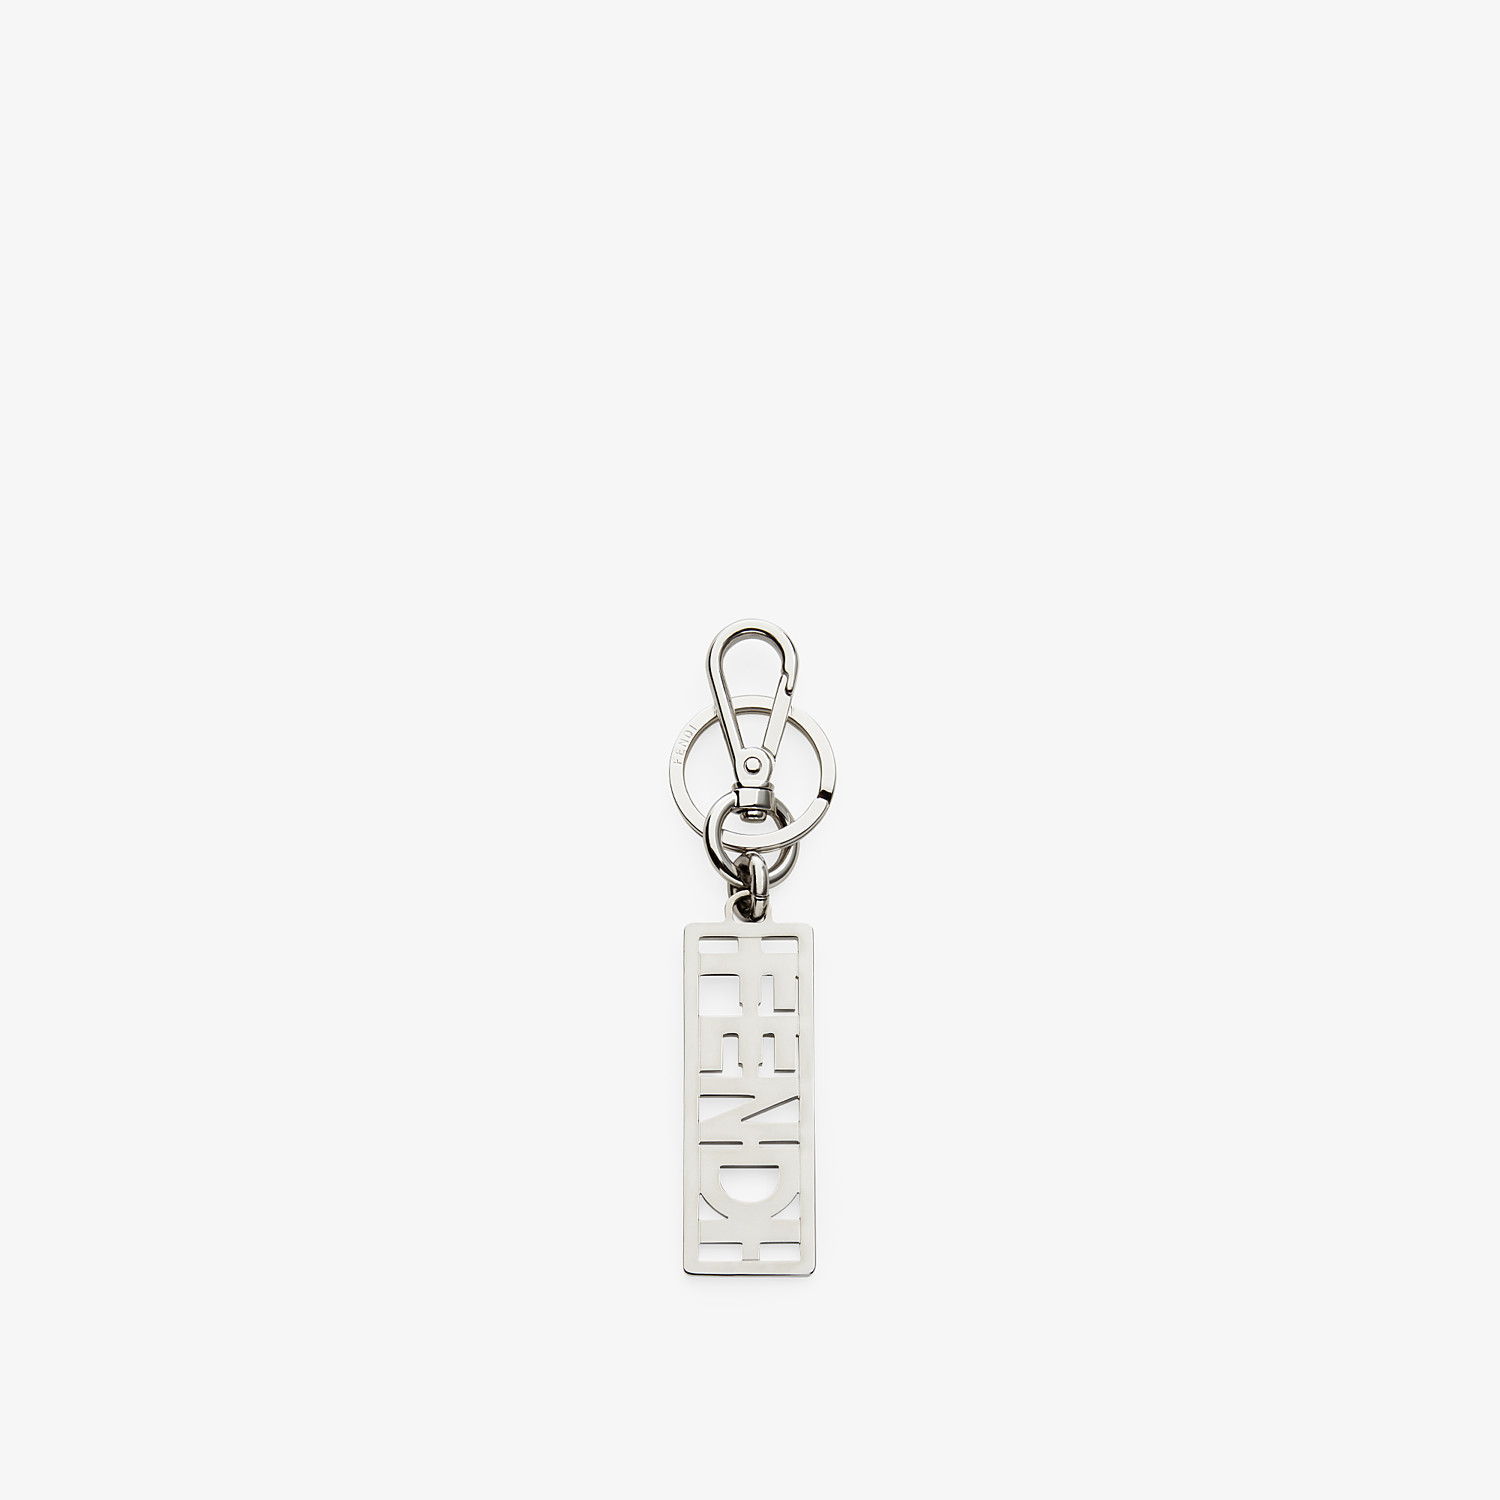 FENDI KEY RING - Silver metal key ring - view 1 detail